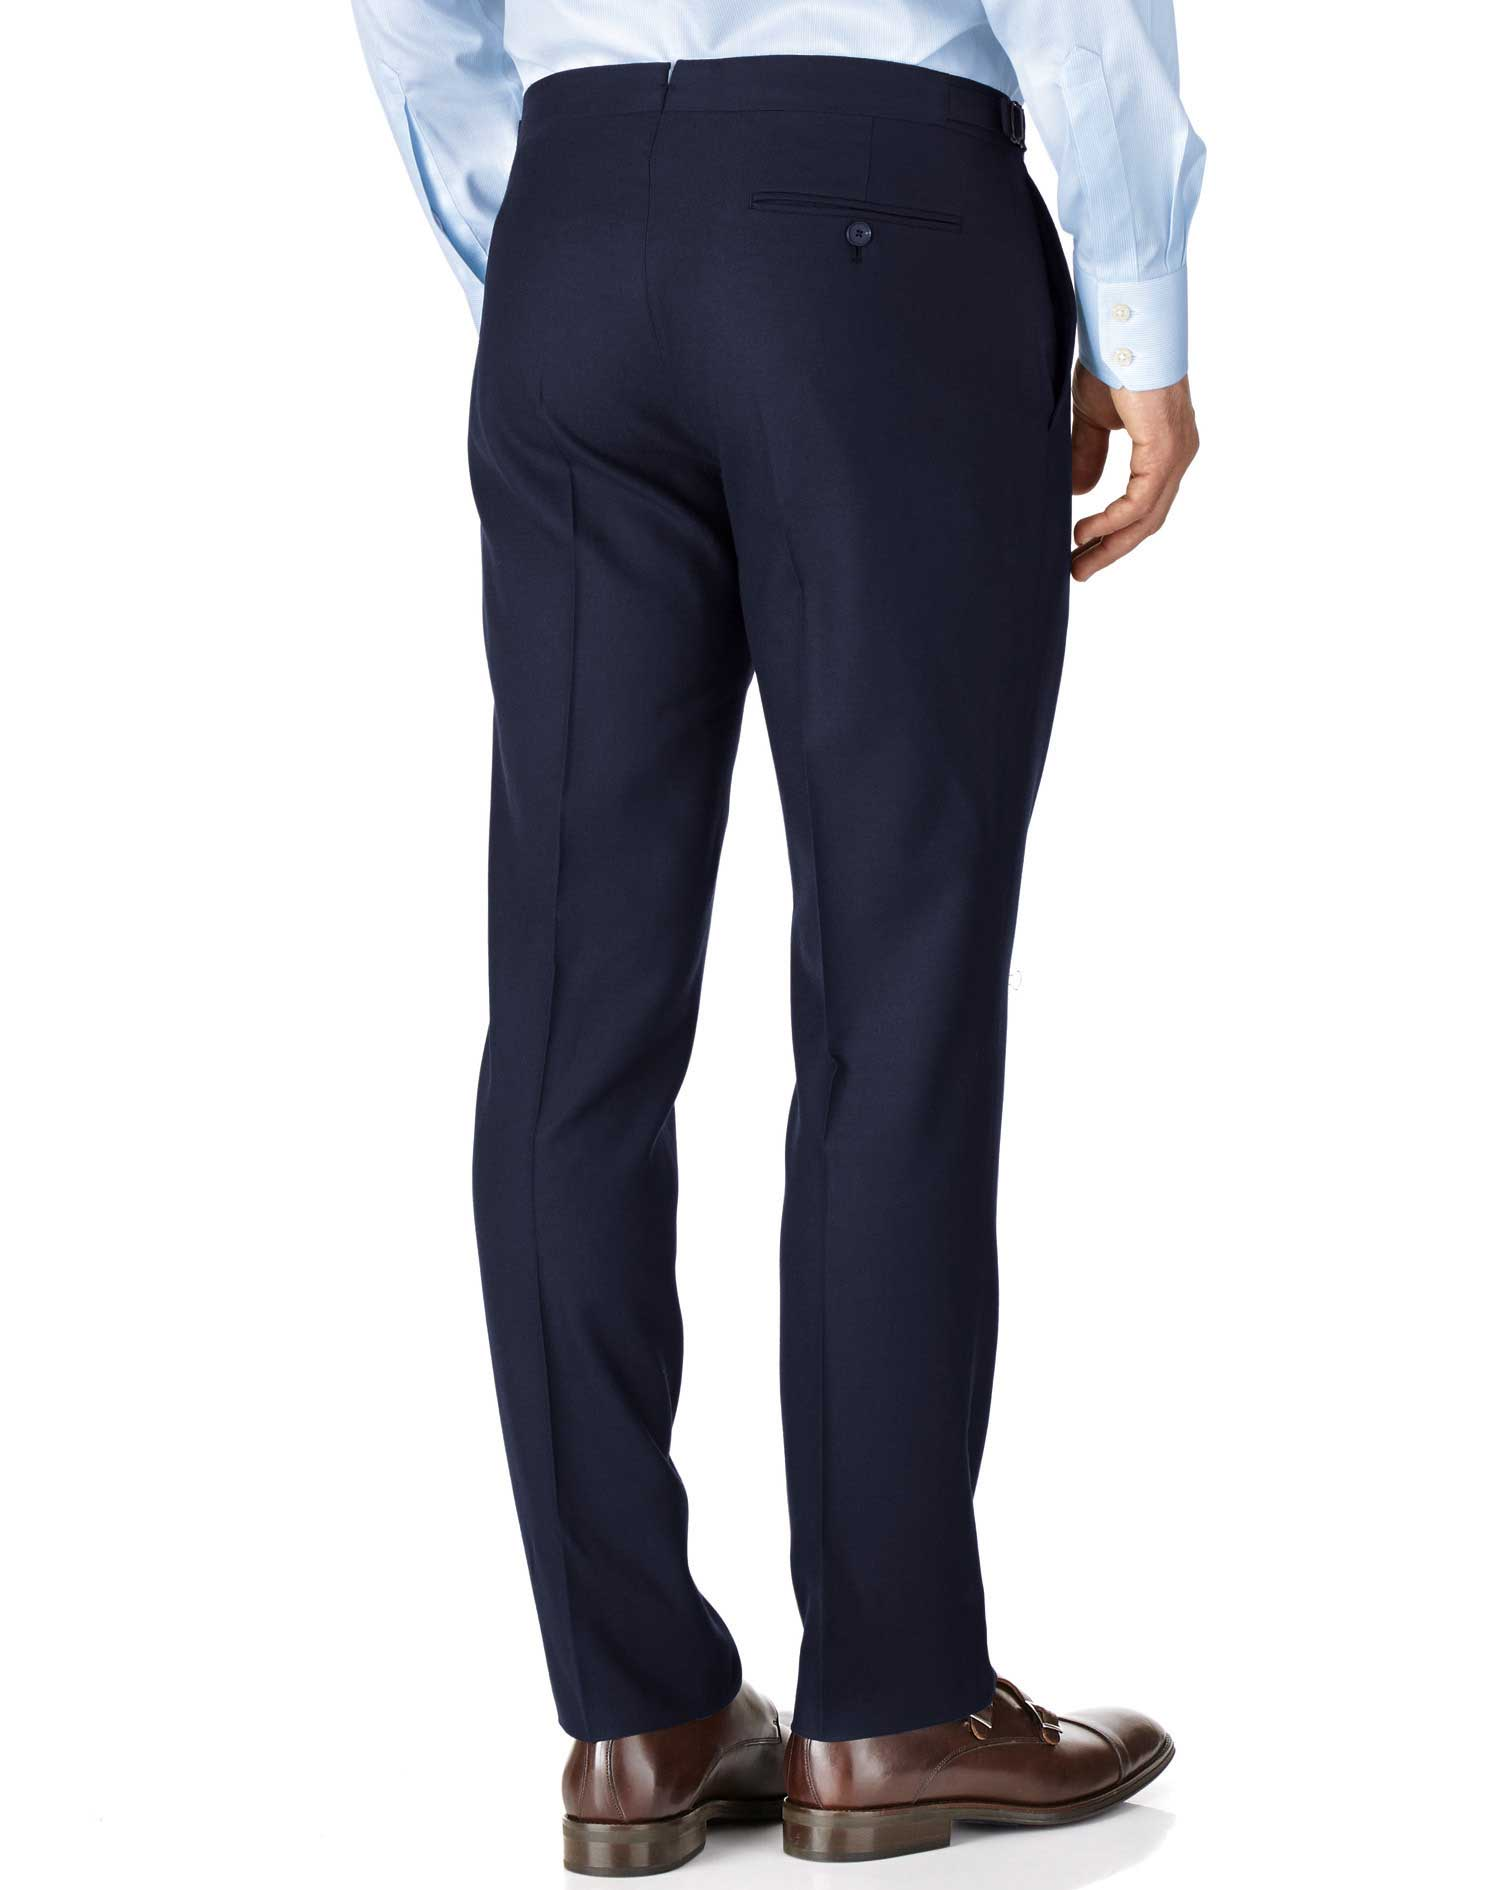 Slim Fit Serge Luxus Anzug Hose in Marineblau